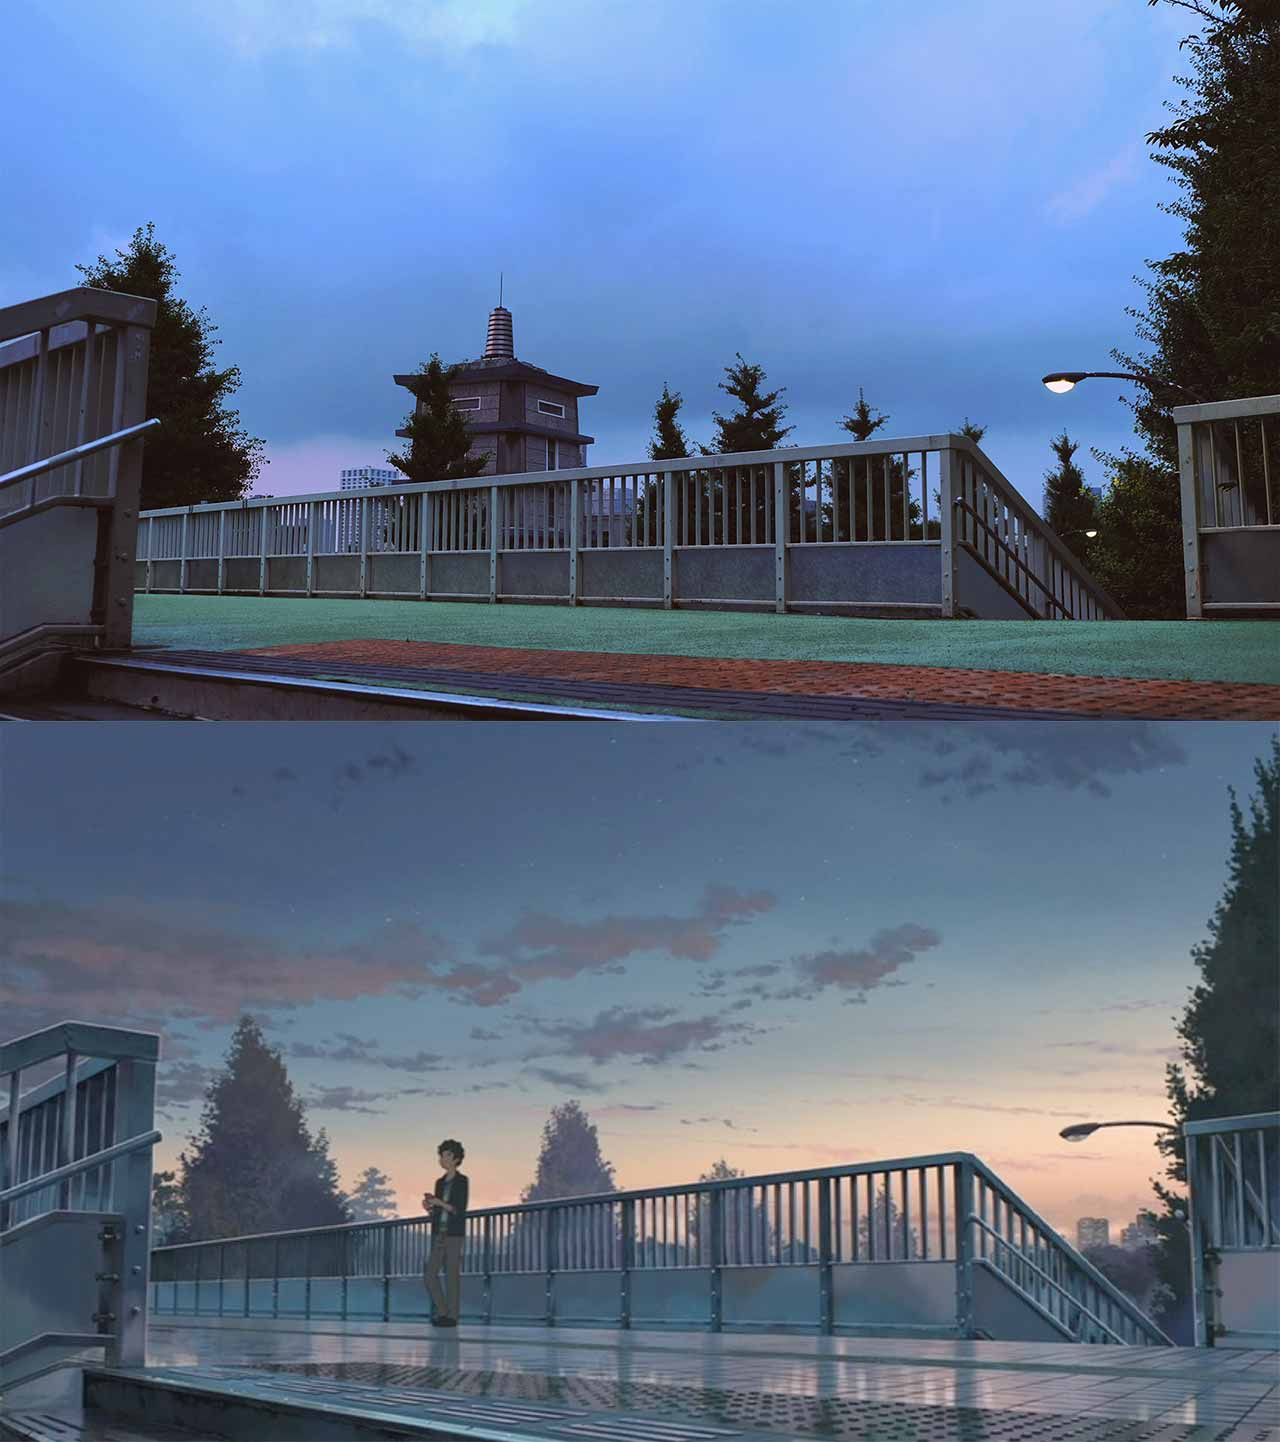 pedestrian bridge in your name